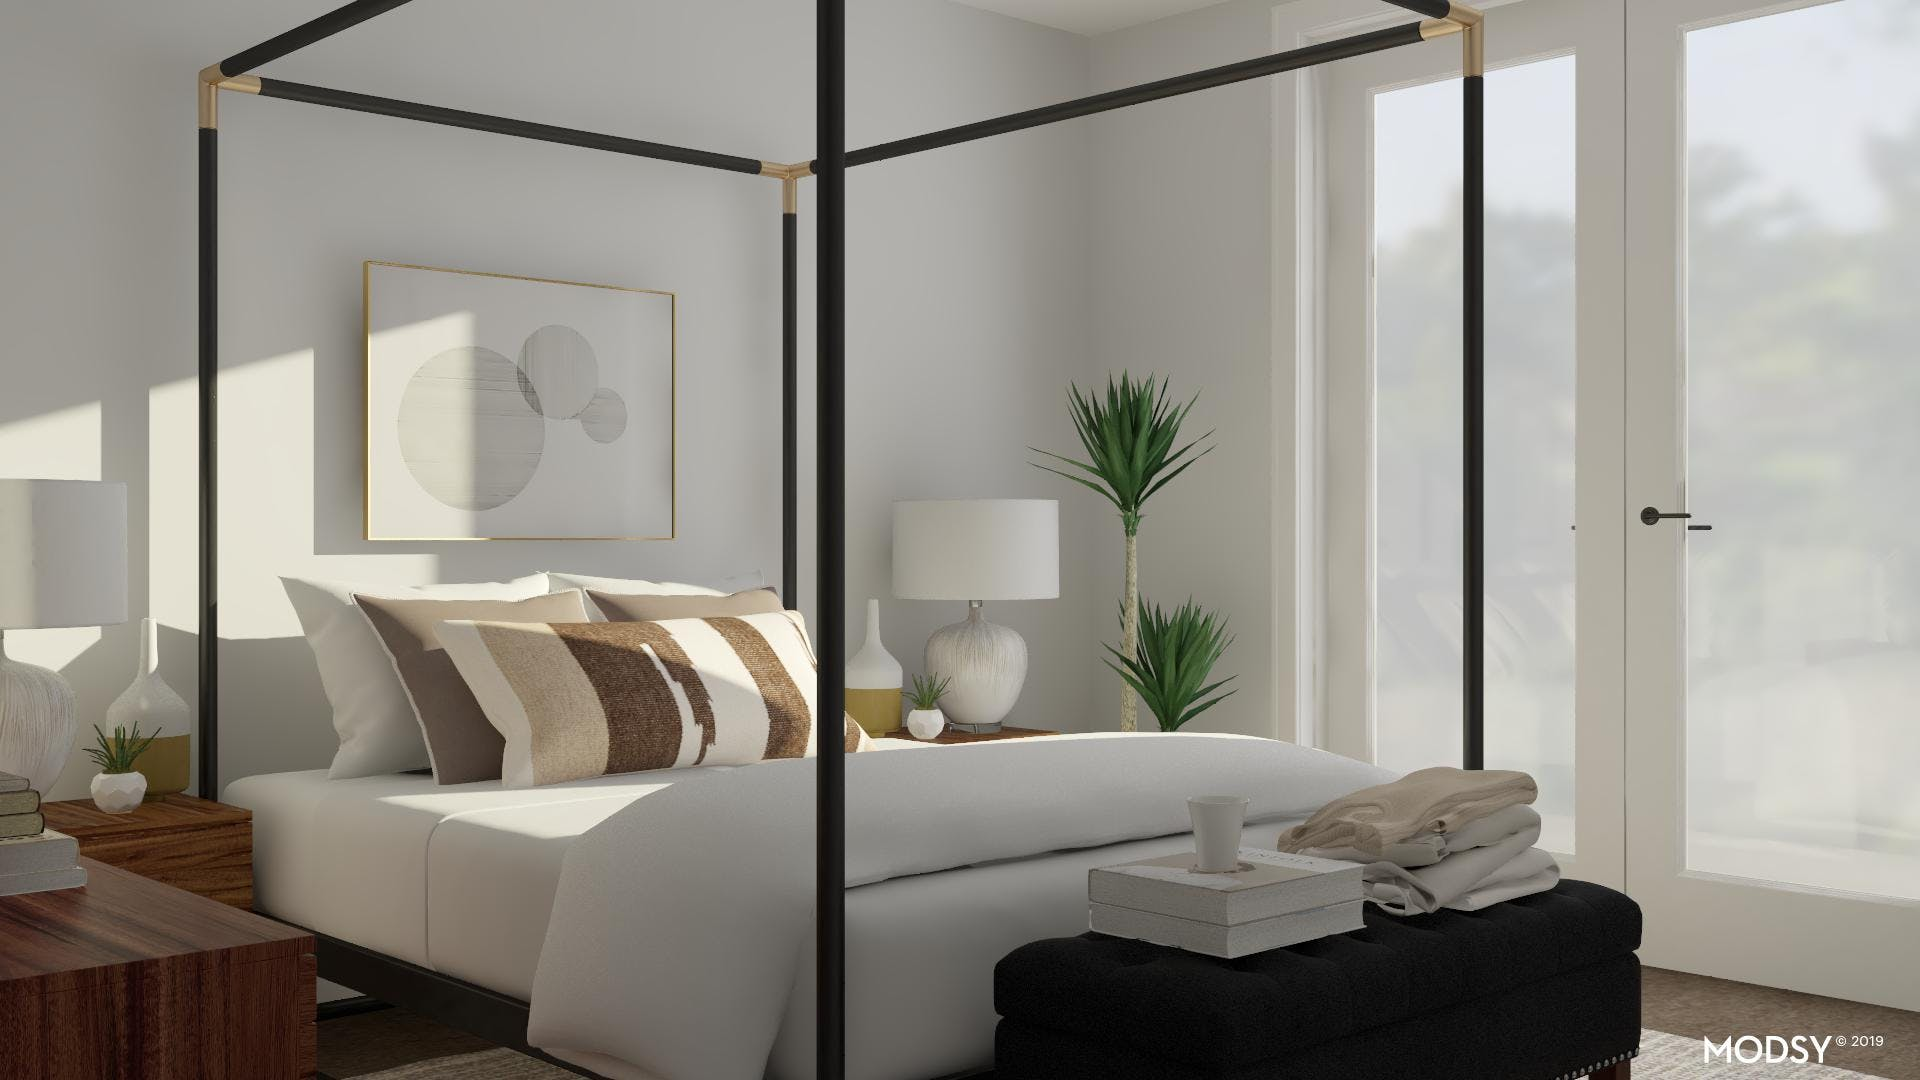 Extra Storage In A Mod Bedroom